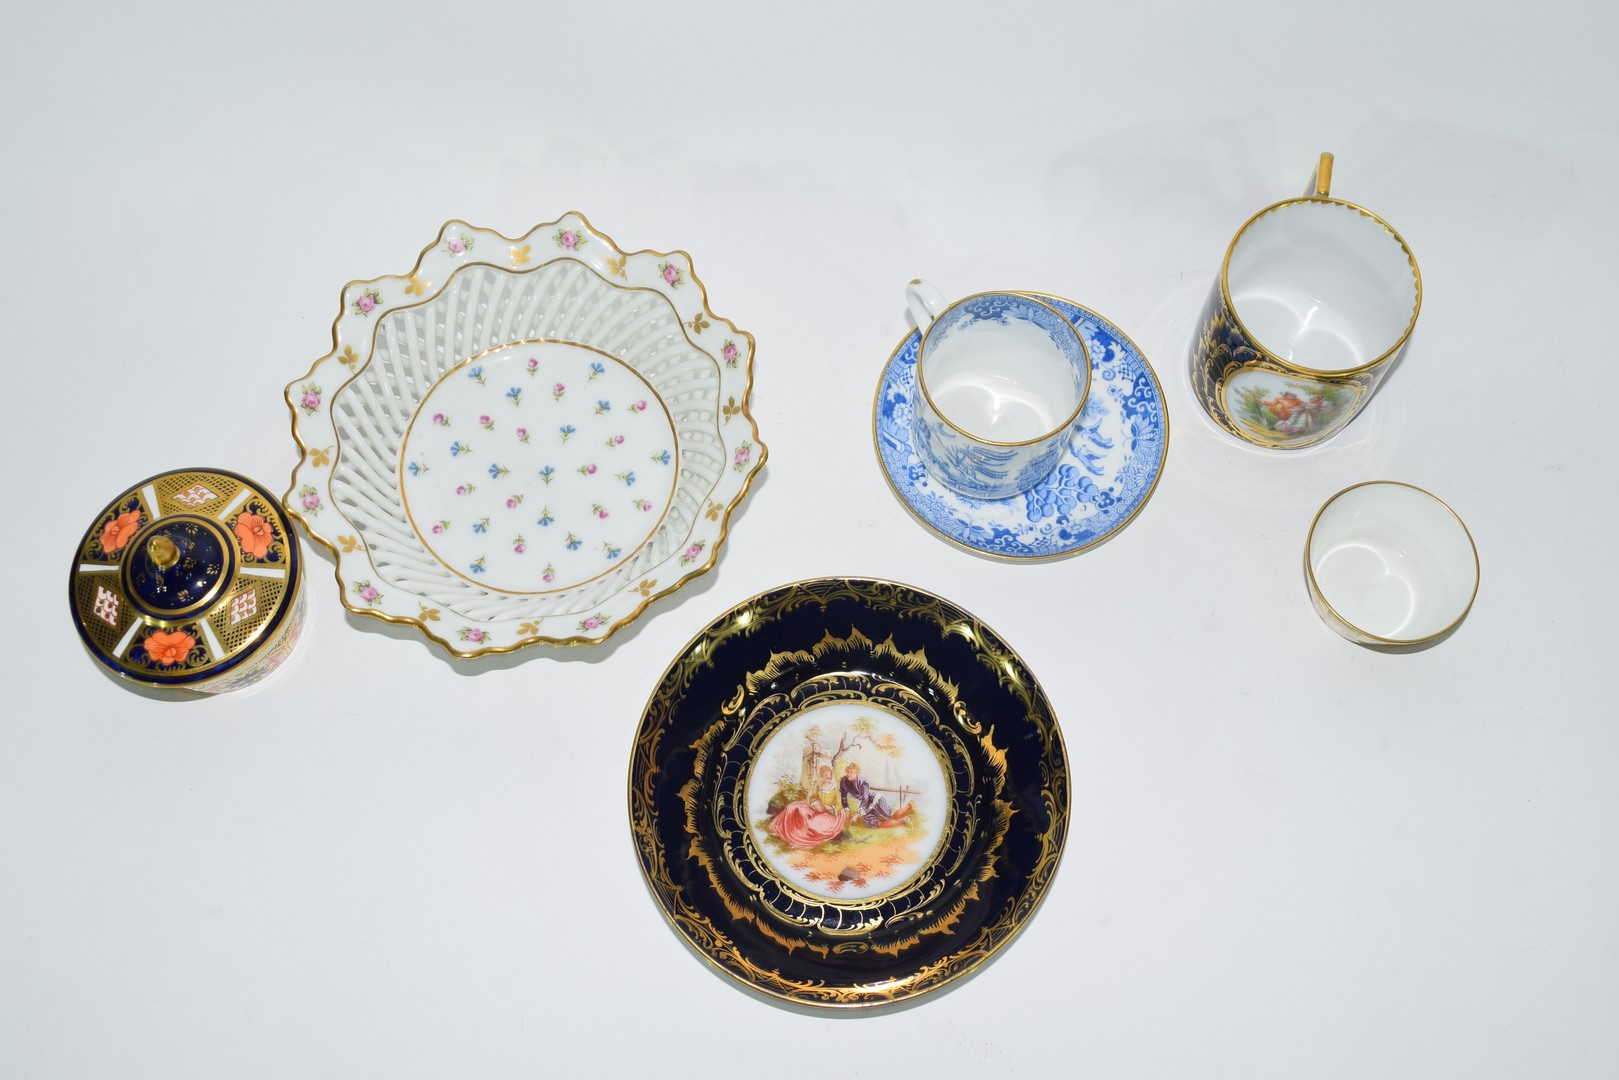 Group of Continental porcelains including a Vienna style cup and saucer - Image 2 of 12